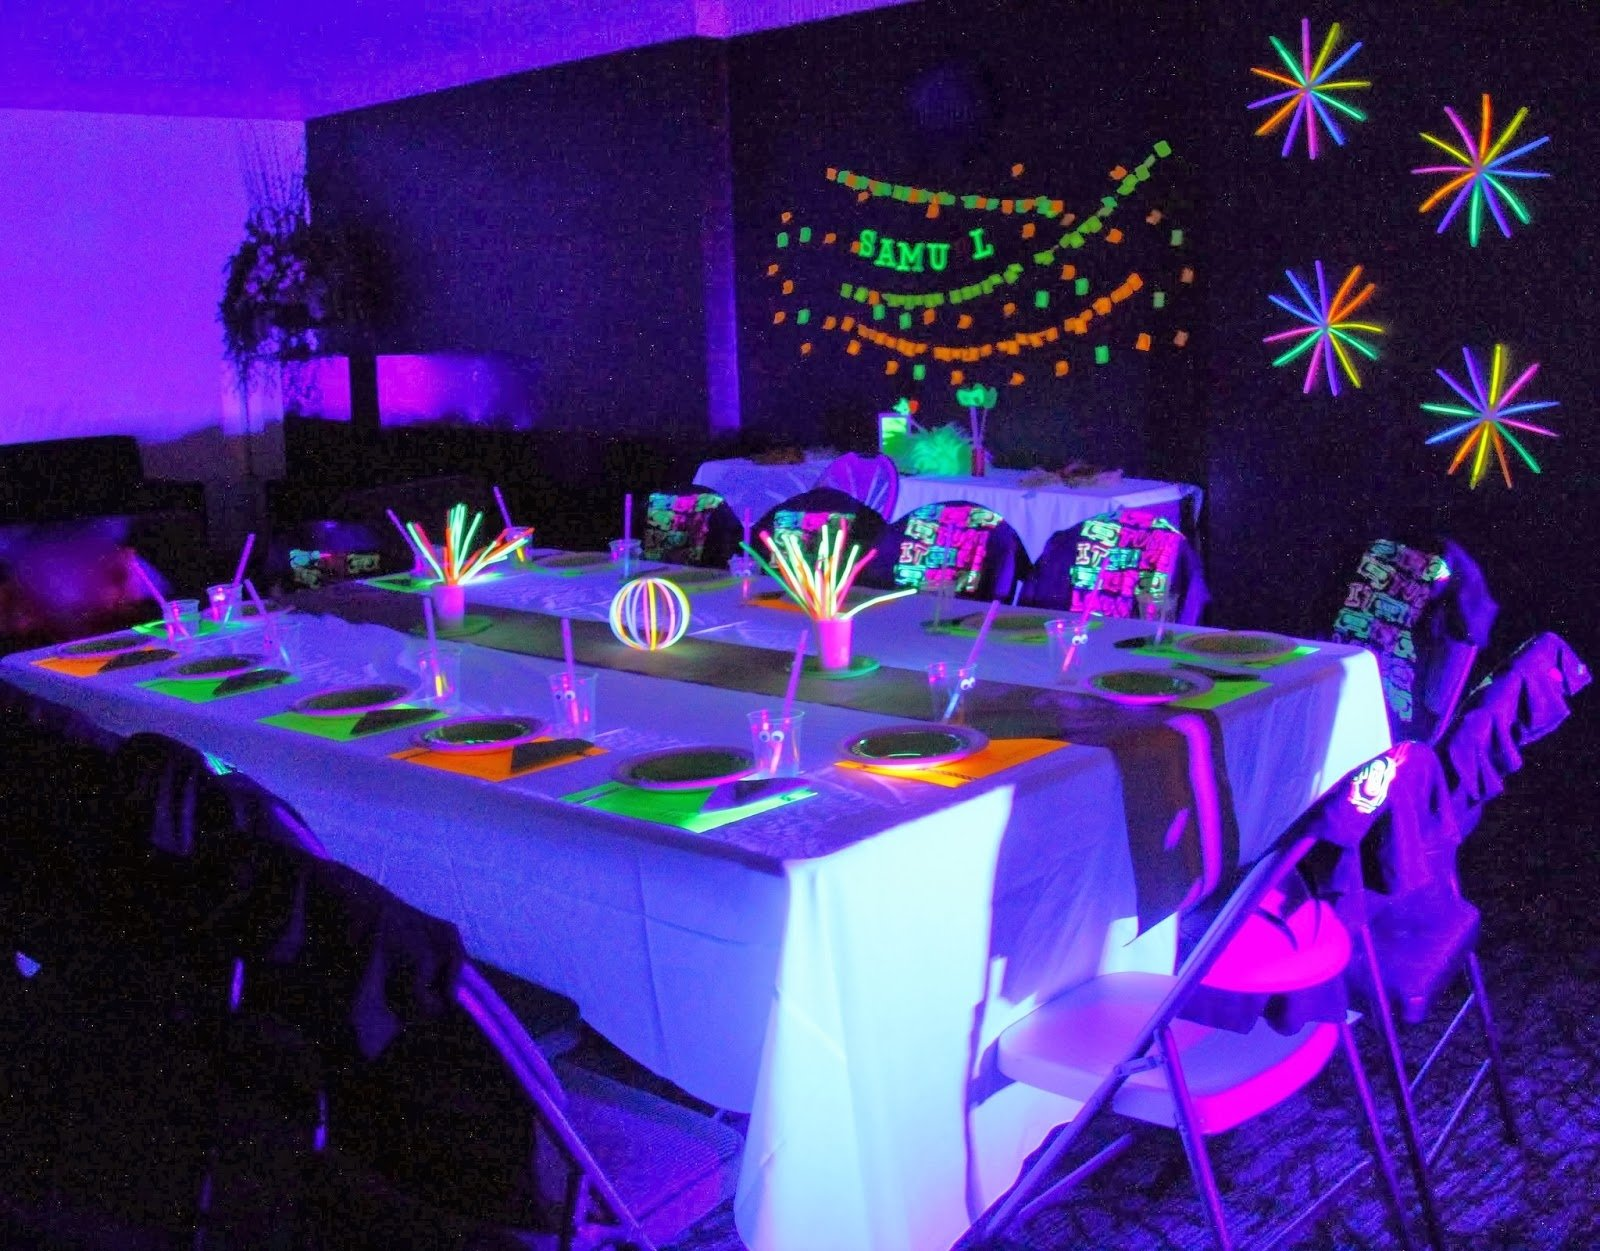 10 Best 18Th Birthday Party Ideas For A Girl 18th birthday party ideas that are grand for guys whomestudio 6 2020